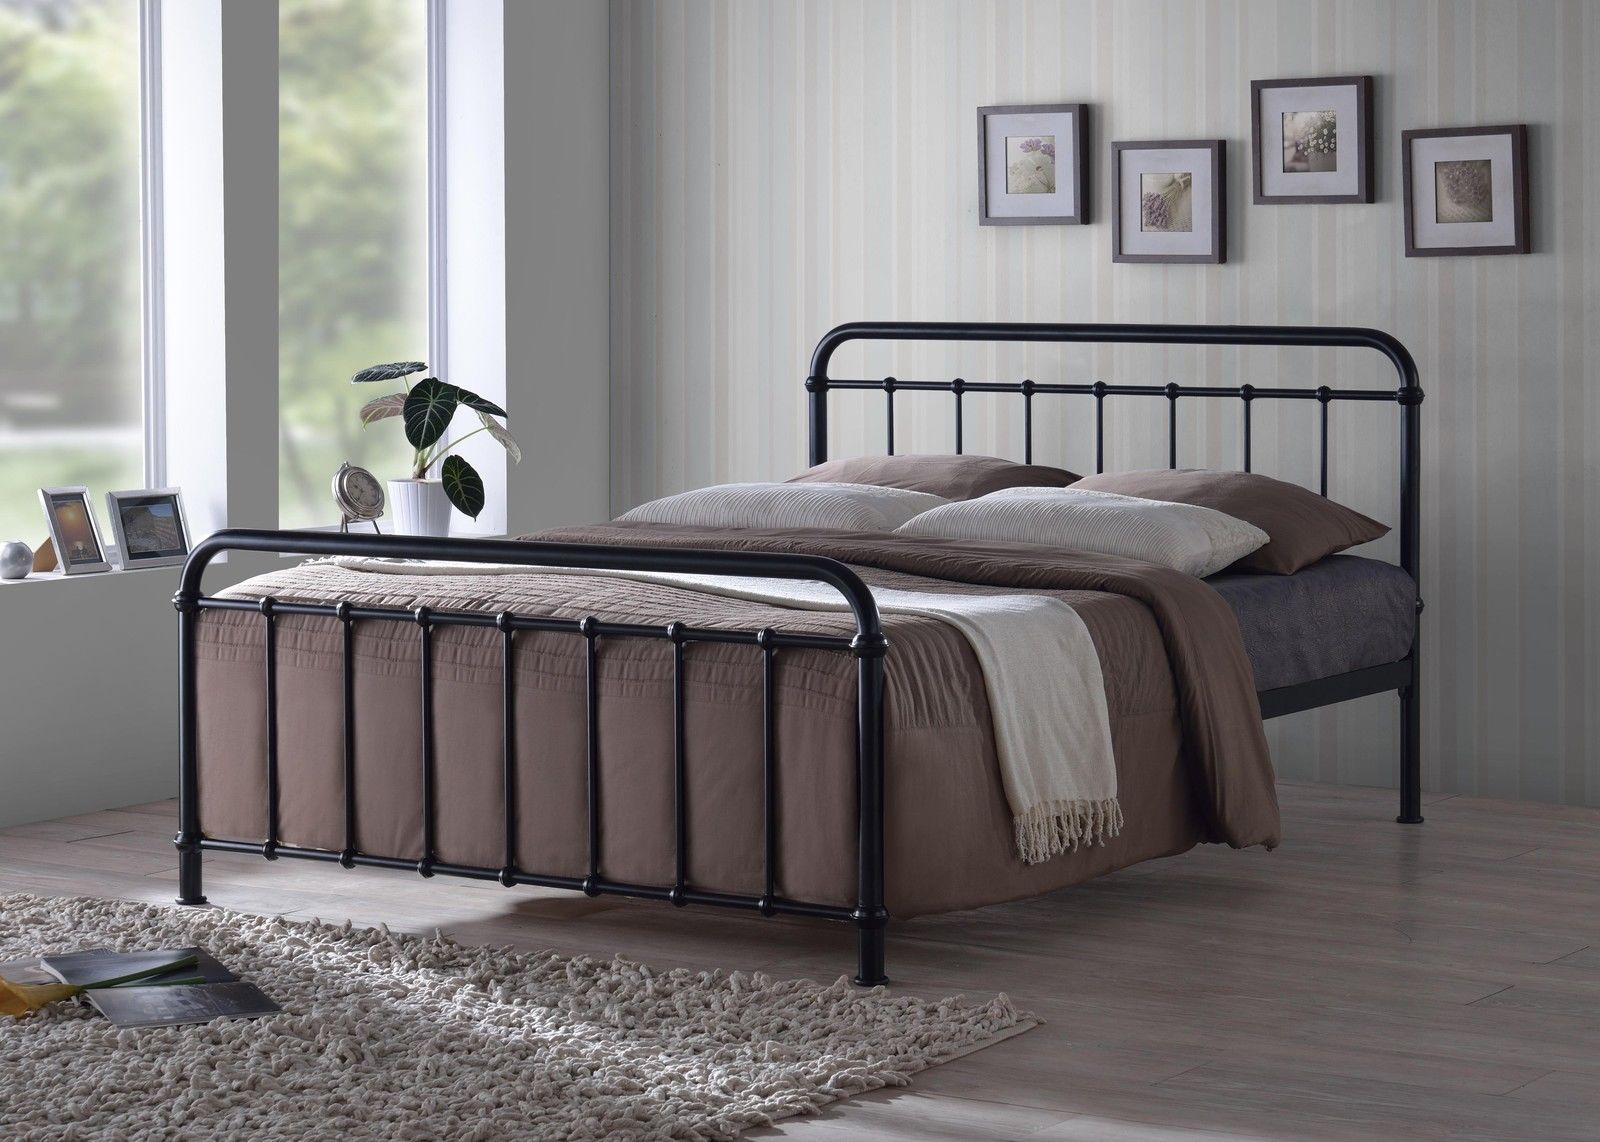 New Miami Traditional Hospital Style 5ft King Size Black